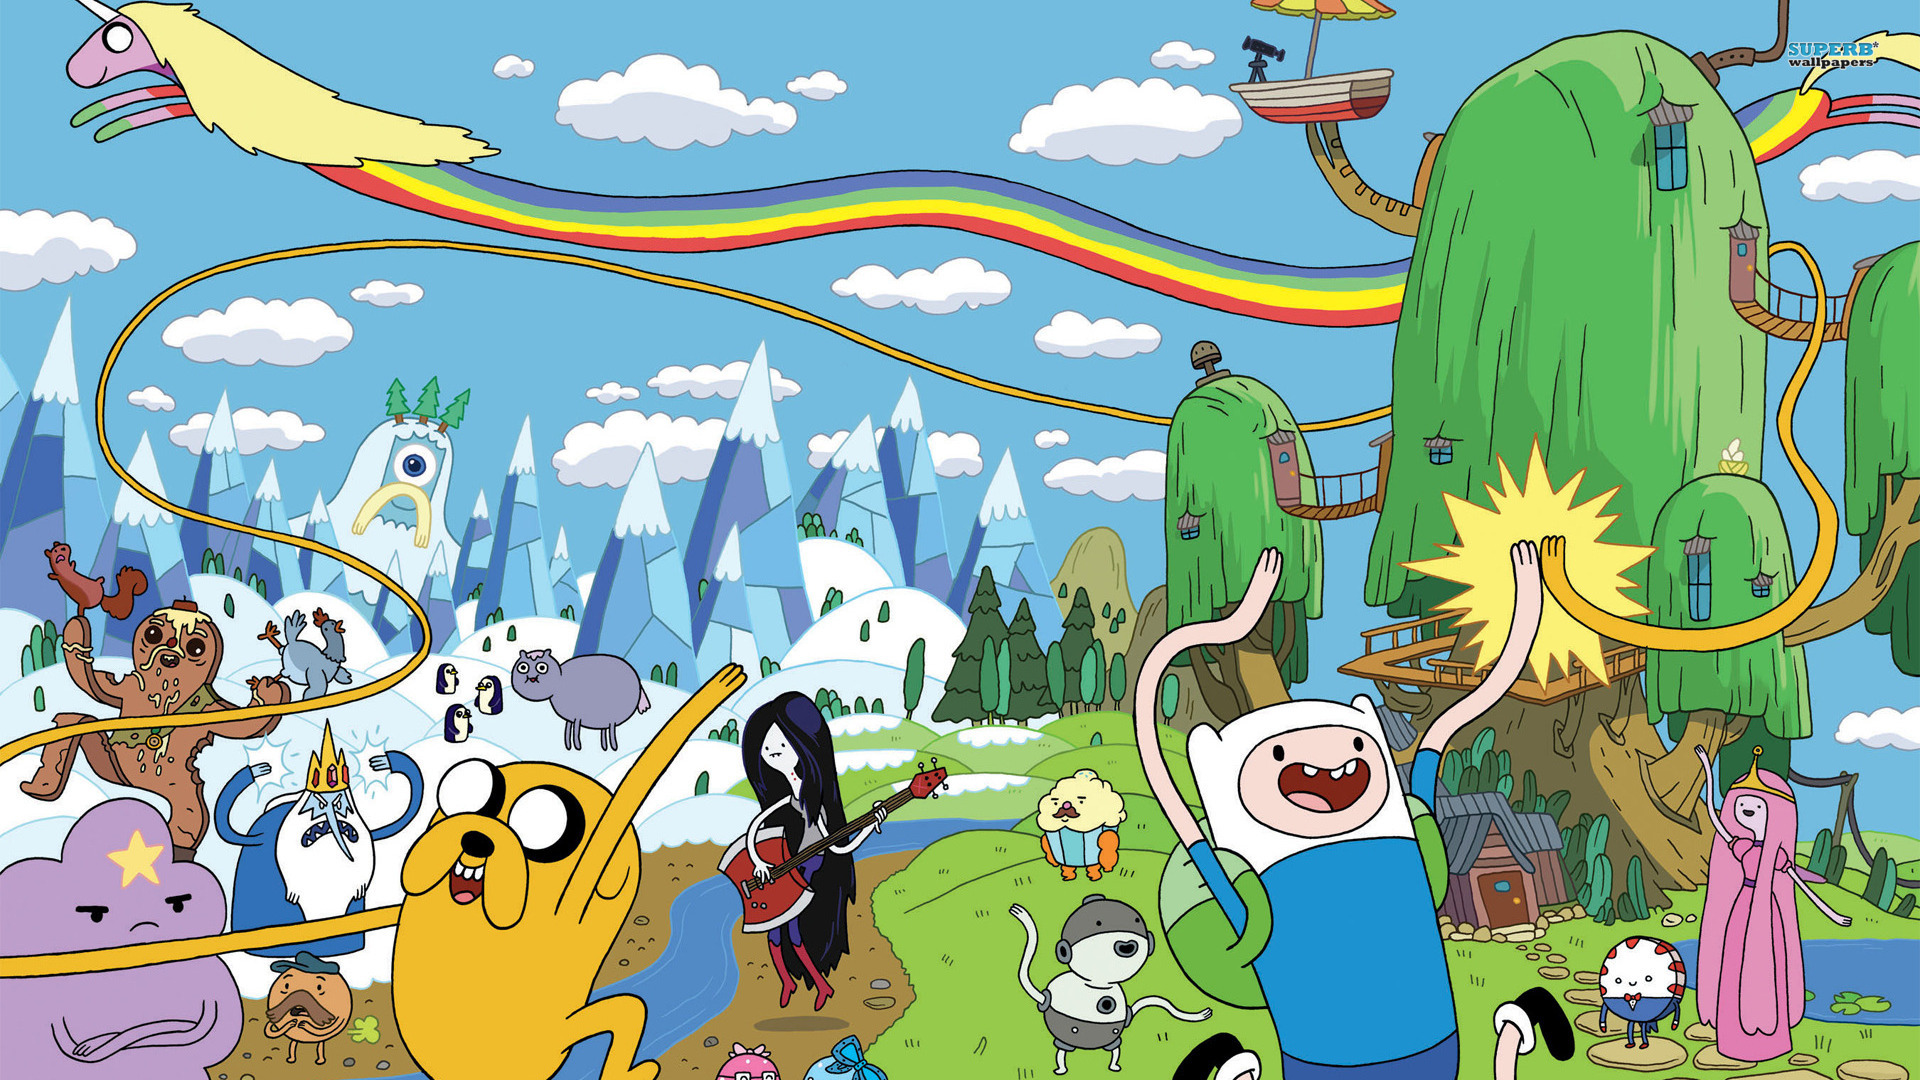 Best ideas about Adventure Time Wallpaper on Pinterest 1920x1080